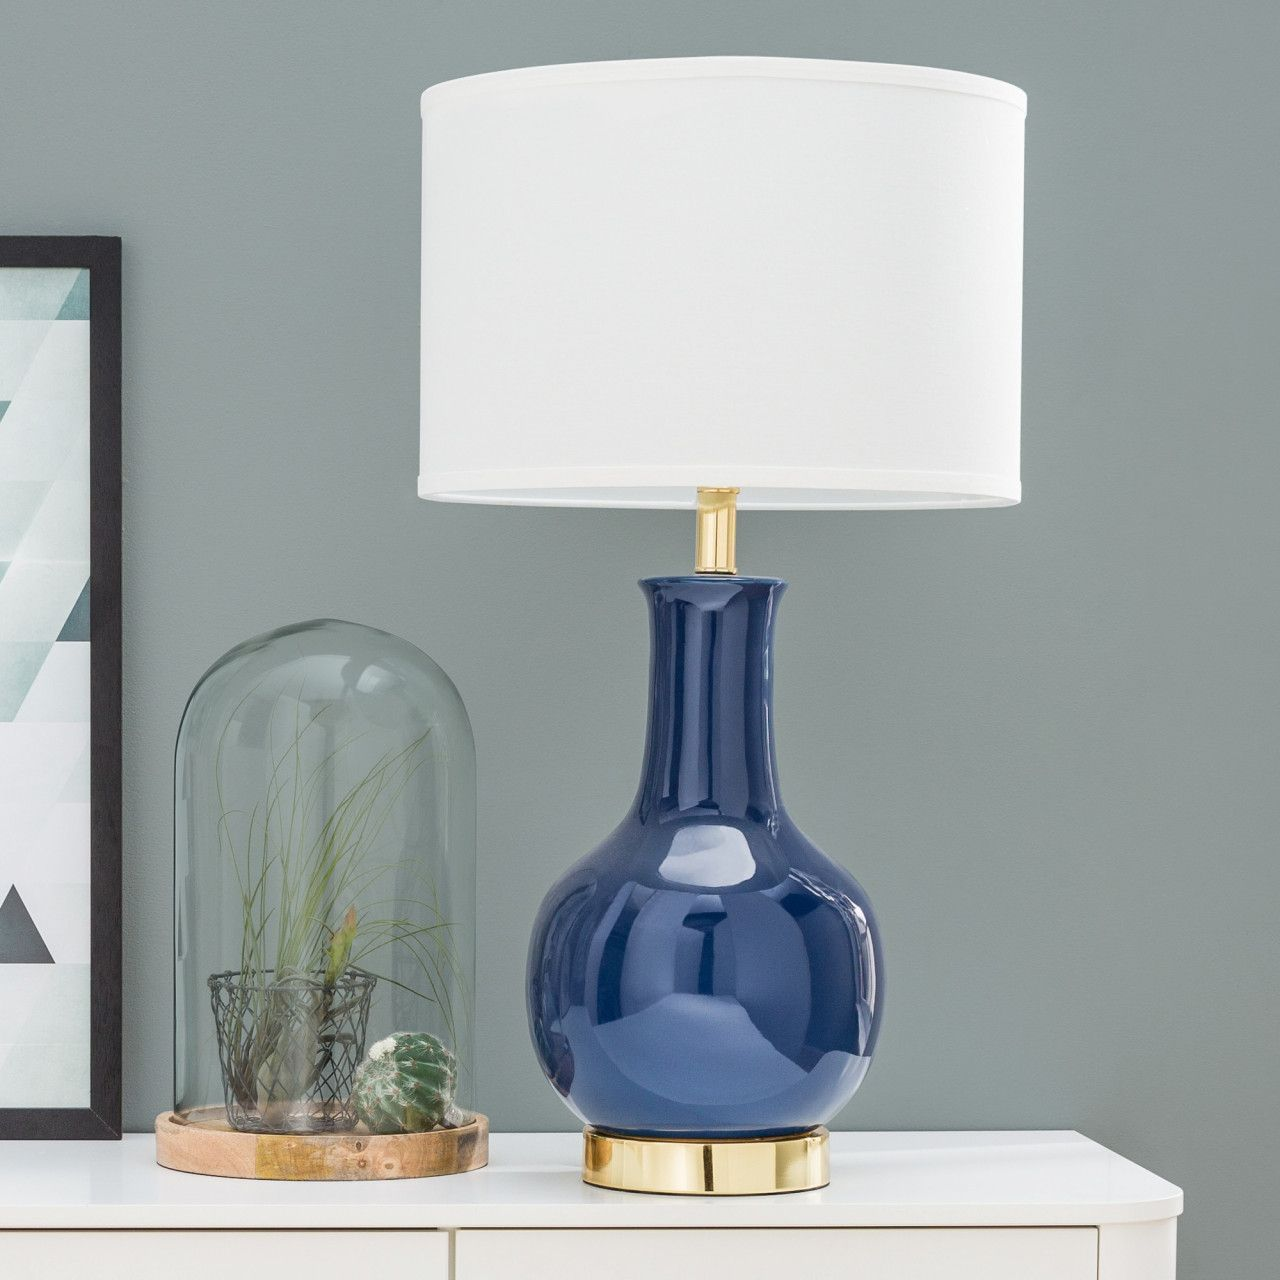 28 Inspirational West Elm Coffee Table Craigslist 2018 Small Table Lamp Table Lamps Living Room Floor Lamp Bedroom